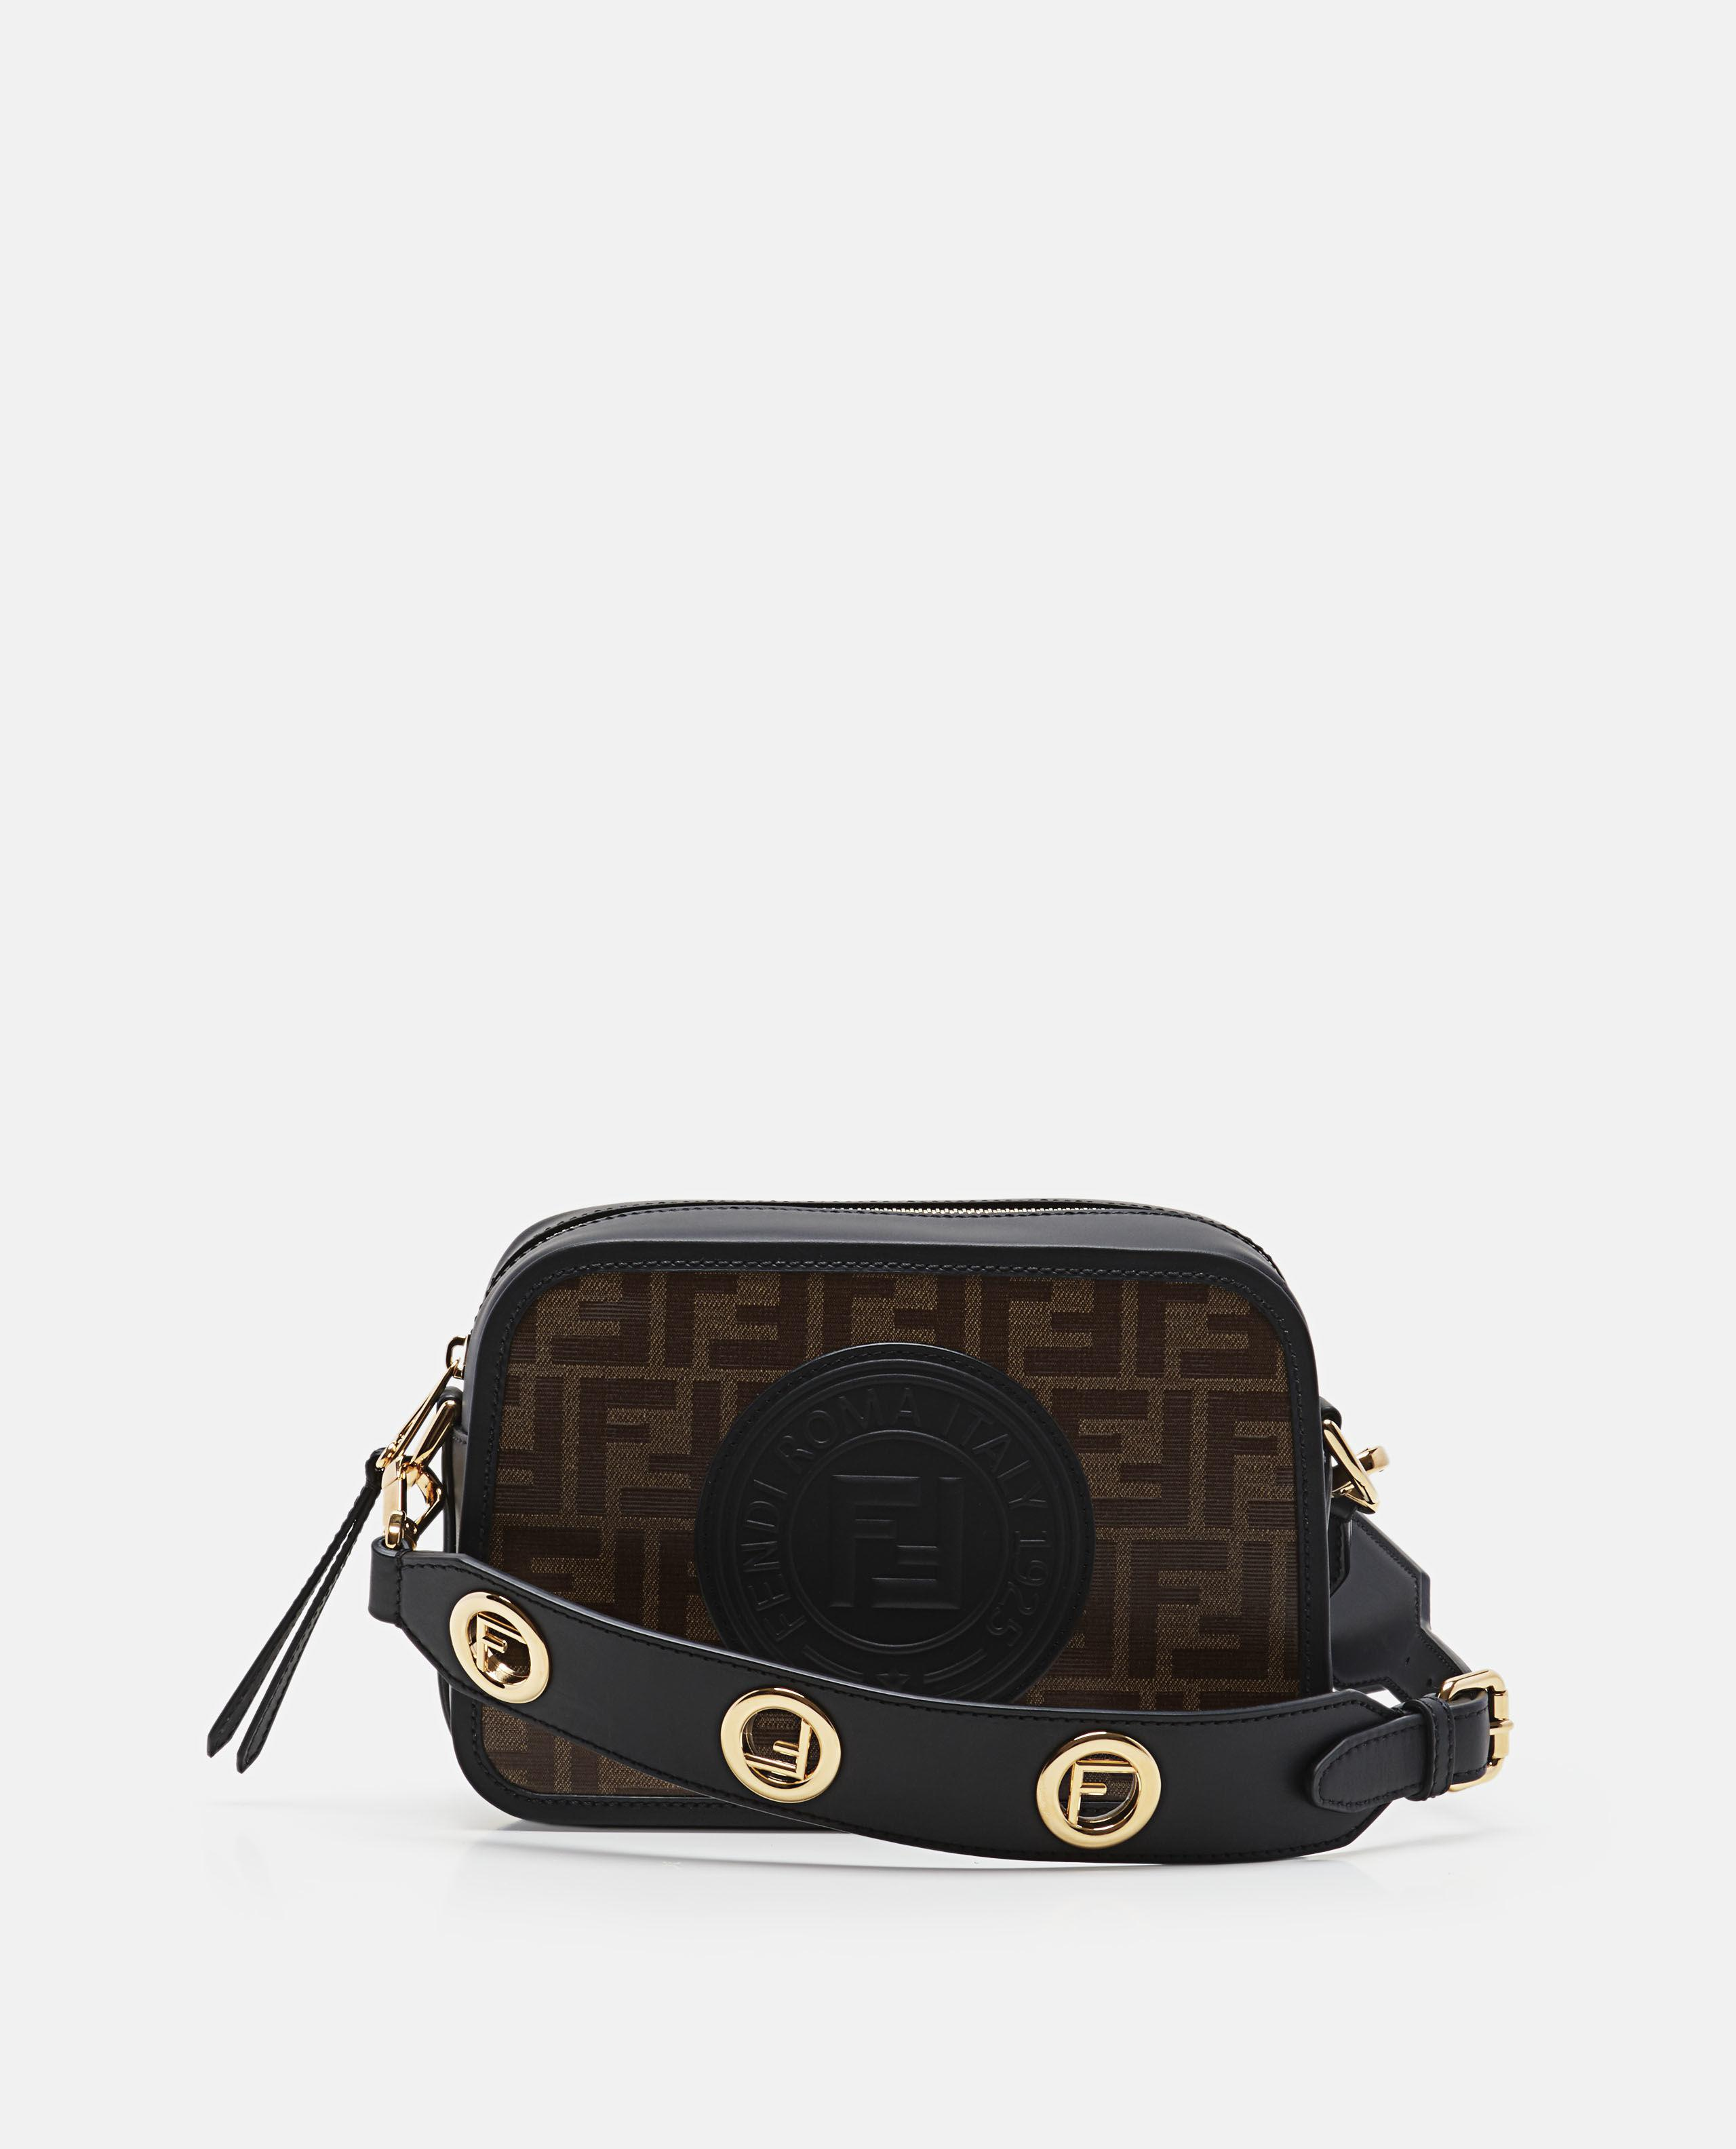 778dab5c154440 Chanel Business Affinity Camera Case Bag Quilted Caviar Small At 1stdibs.  Lyst Fendi Camera Case Bag In Black